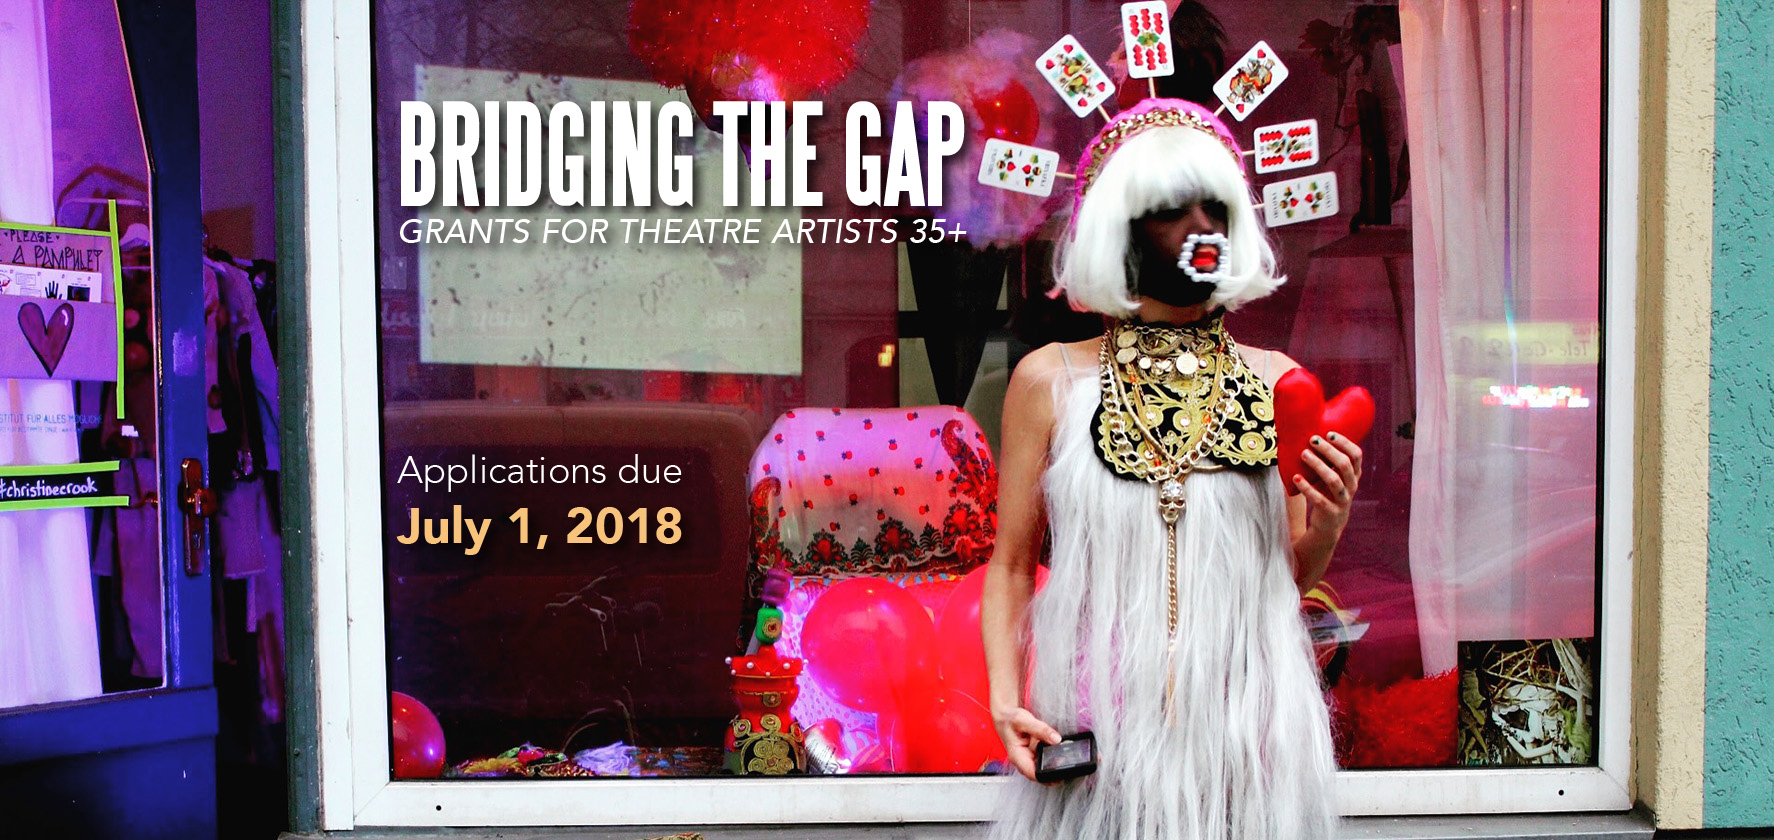 Bridging the Gap grant project